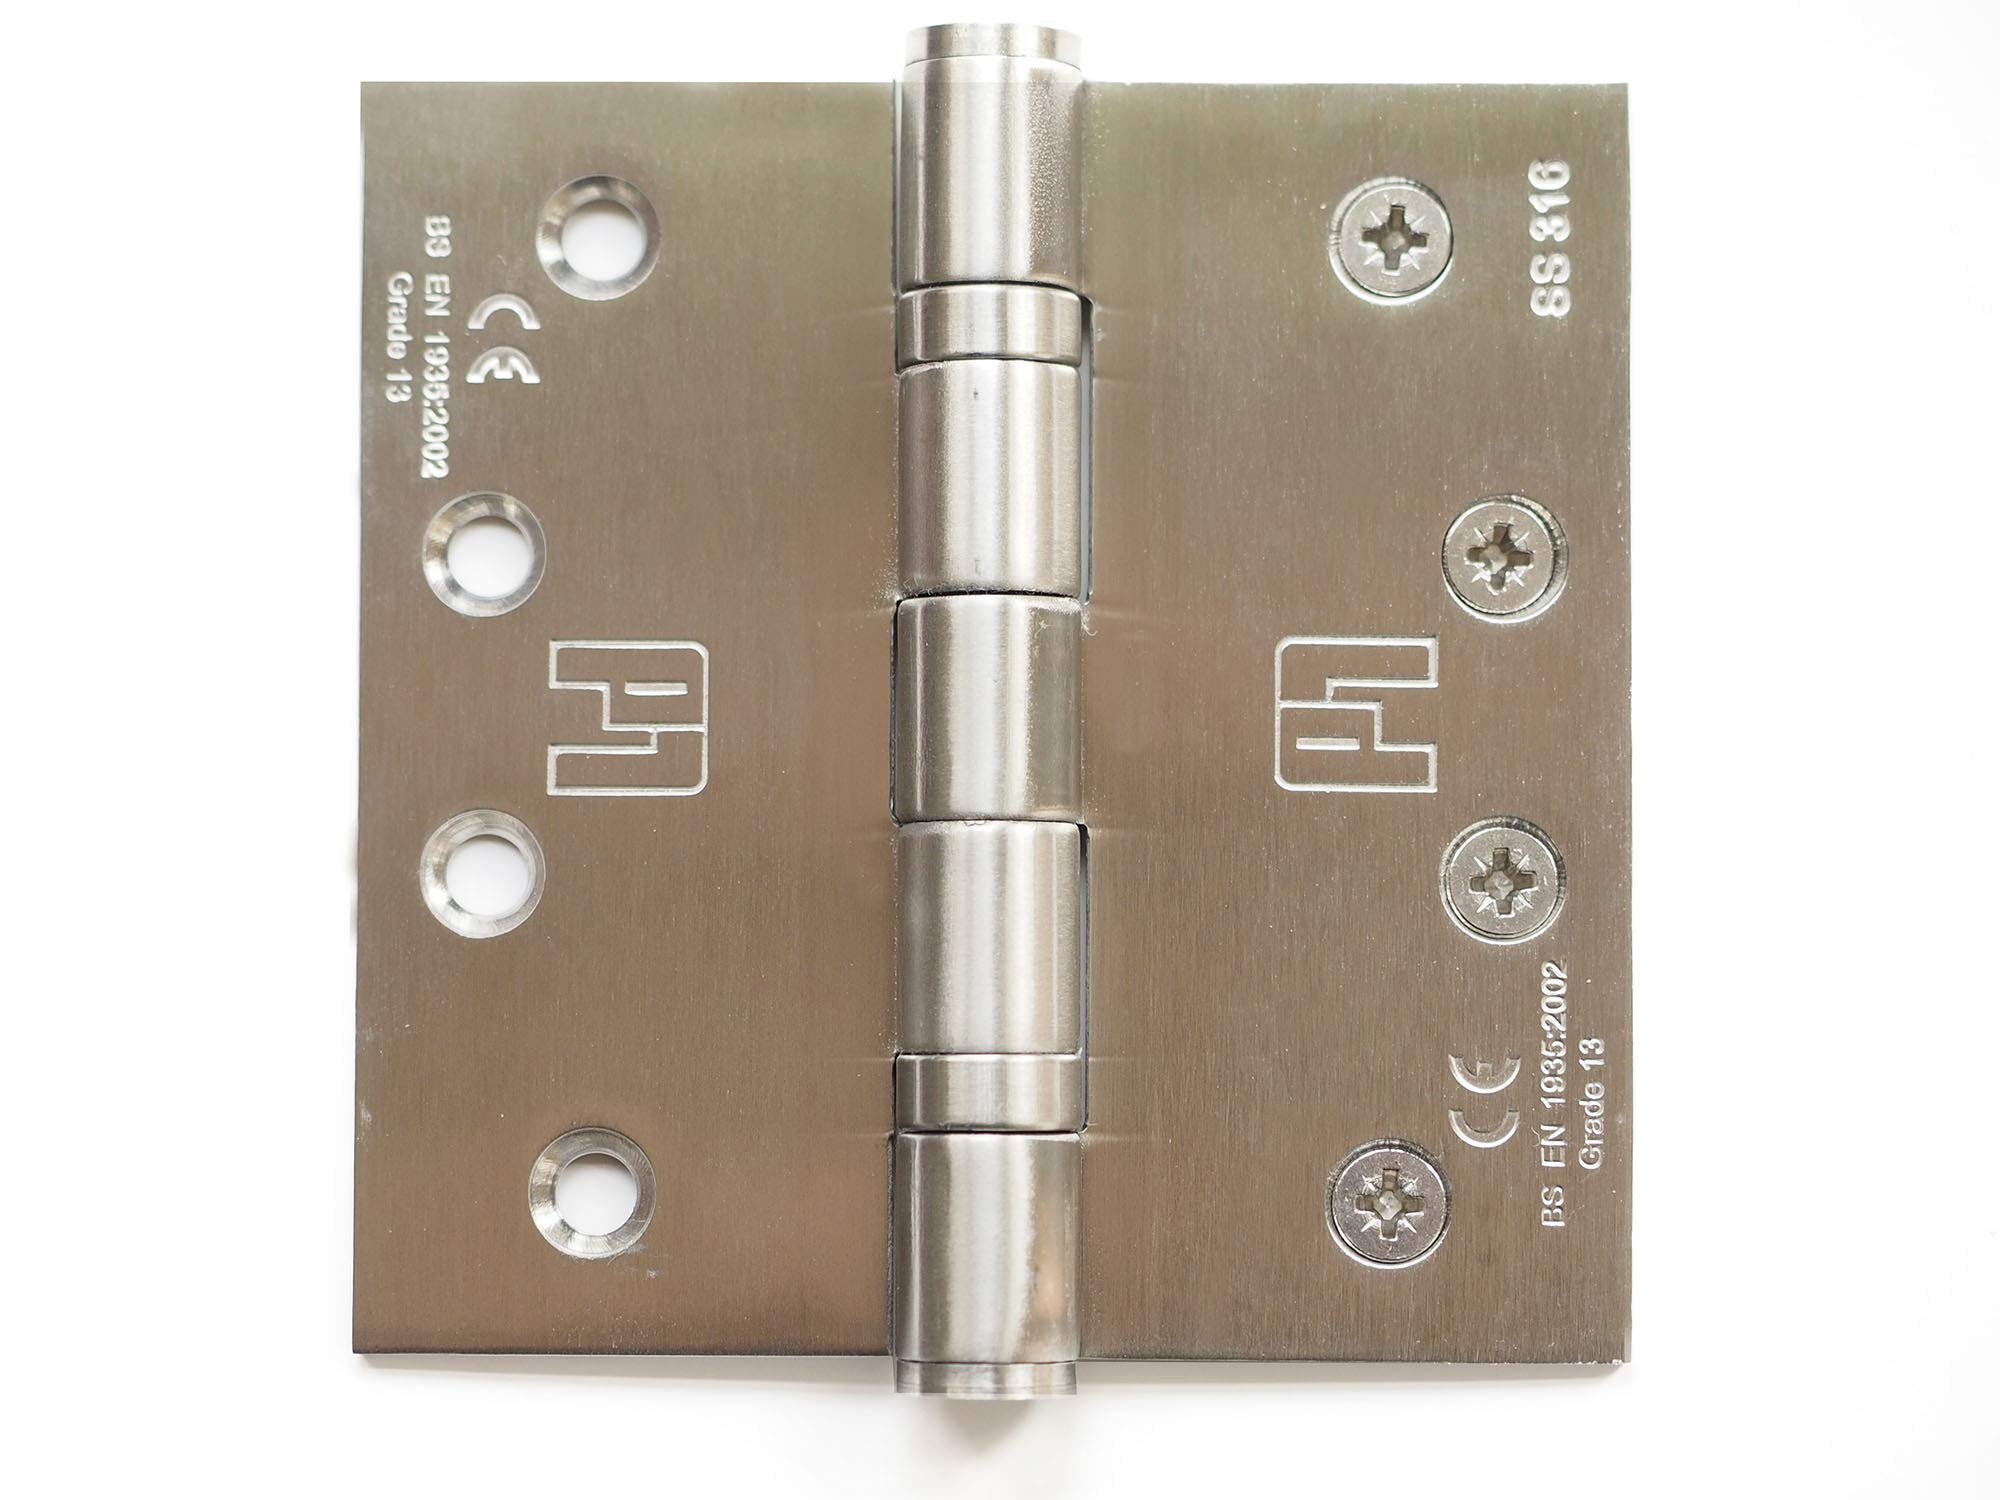 Anti-Corrosion 316 Stainless Steel Door Hinges 2pk. Used for Commercial or Residential Heavy Doors. Reliable Under high Usage. Withstands Harsh temperatures Yet retaining Strength and Durability